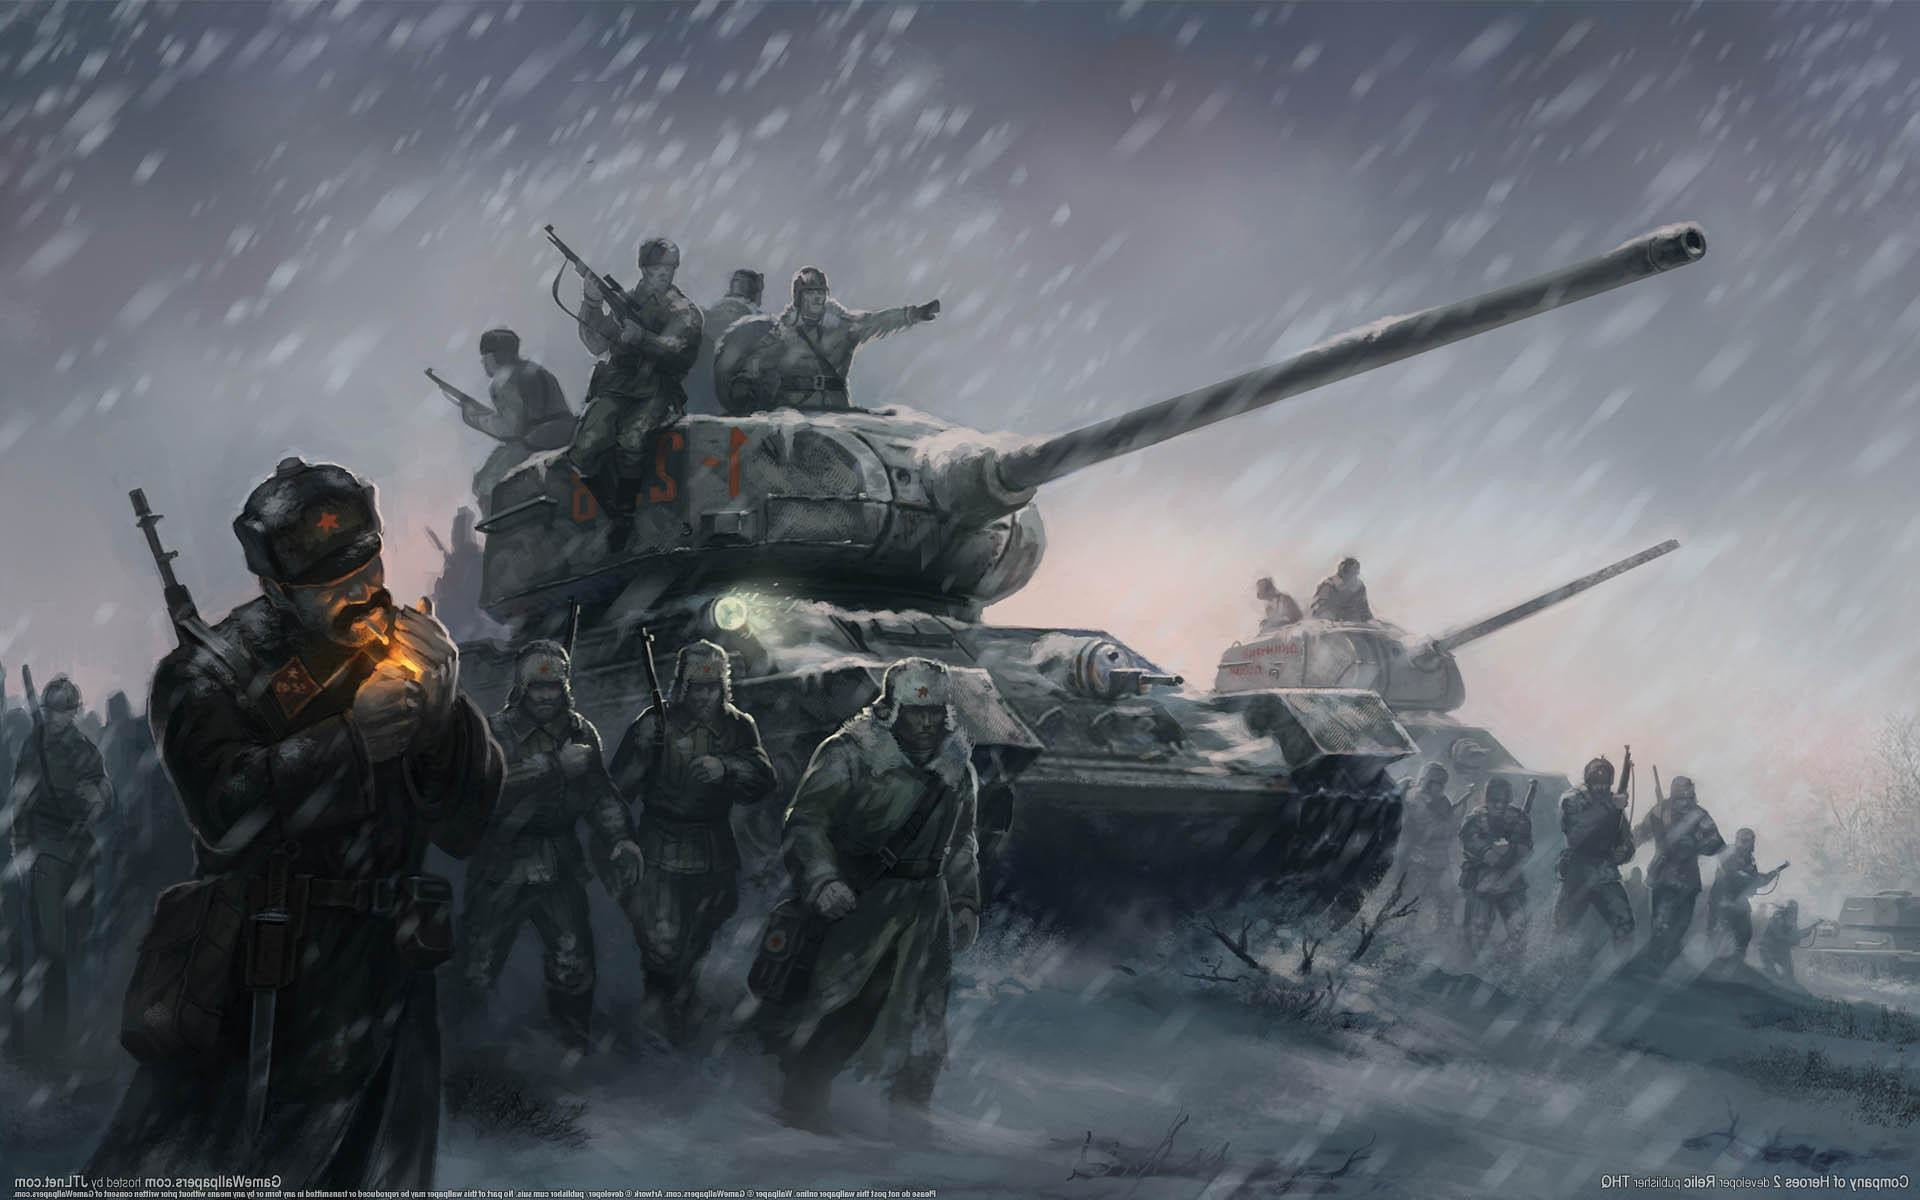 Wwii Wallpaper 1920x1080 Posted By Michelle Cunningham